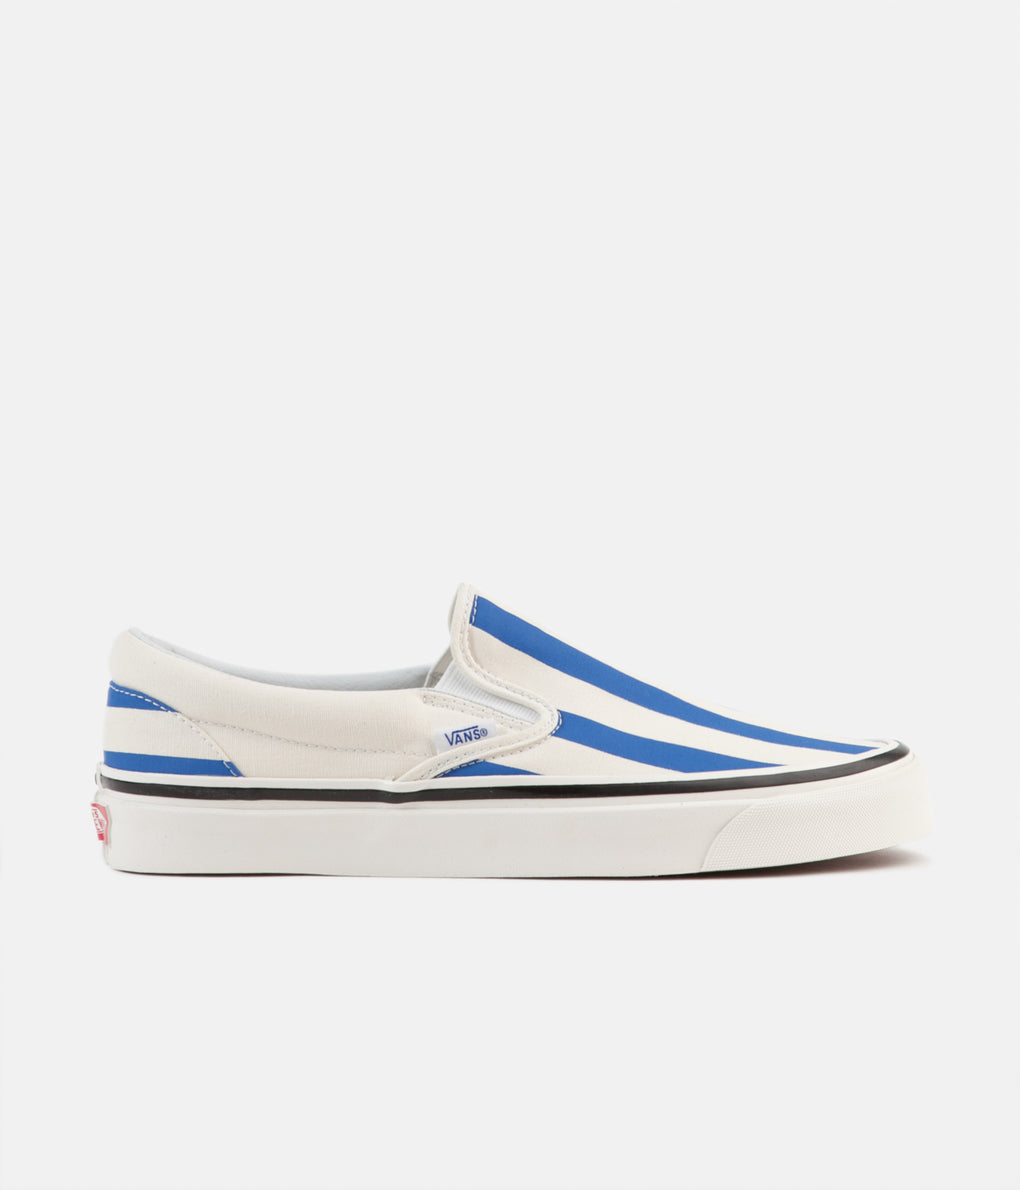 Vans Classic Slip-On 98 DX Anaheim Factory Shoes - OG White / OG Blue / Big Stripes